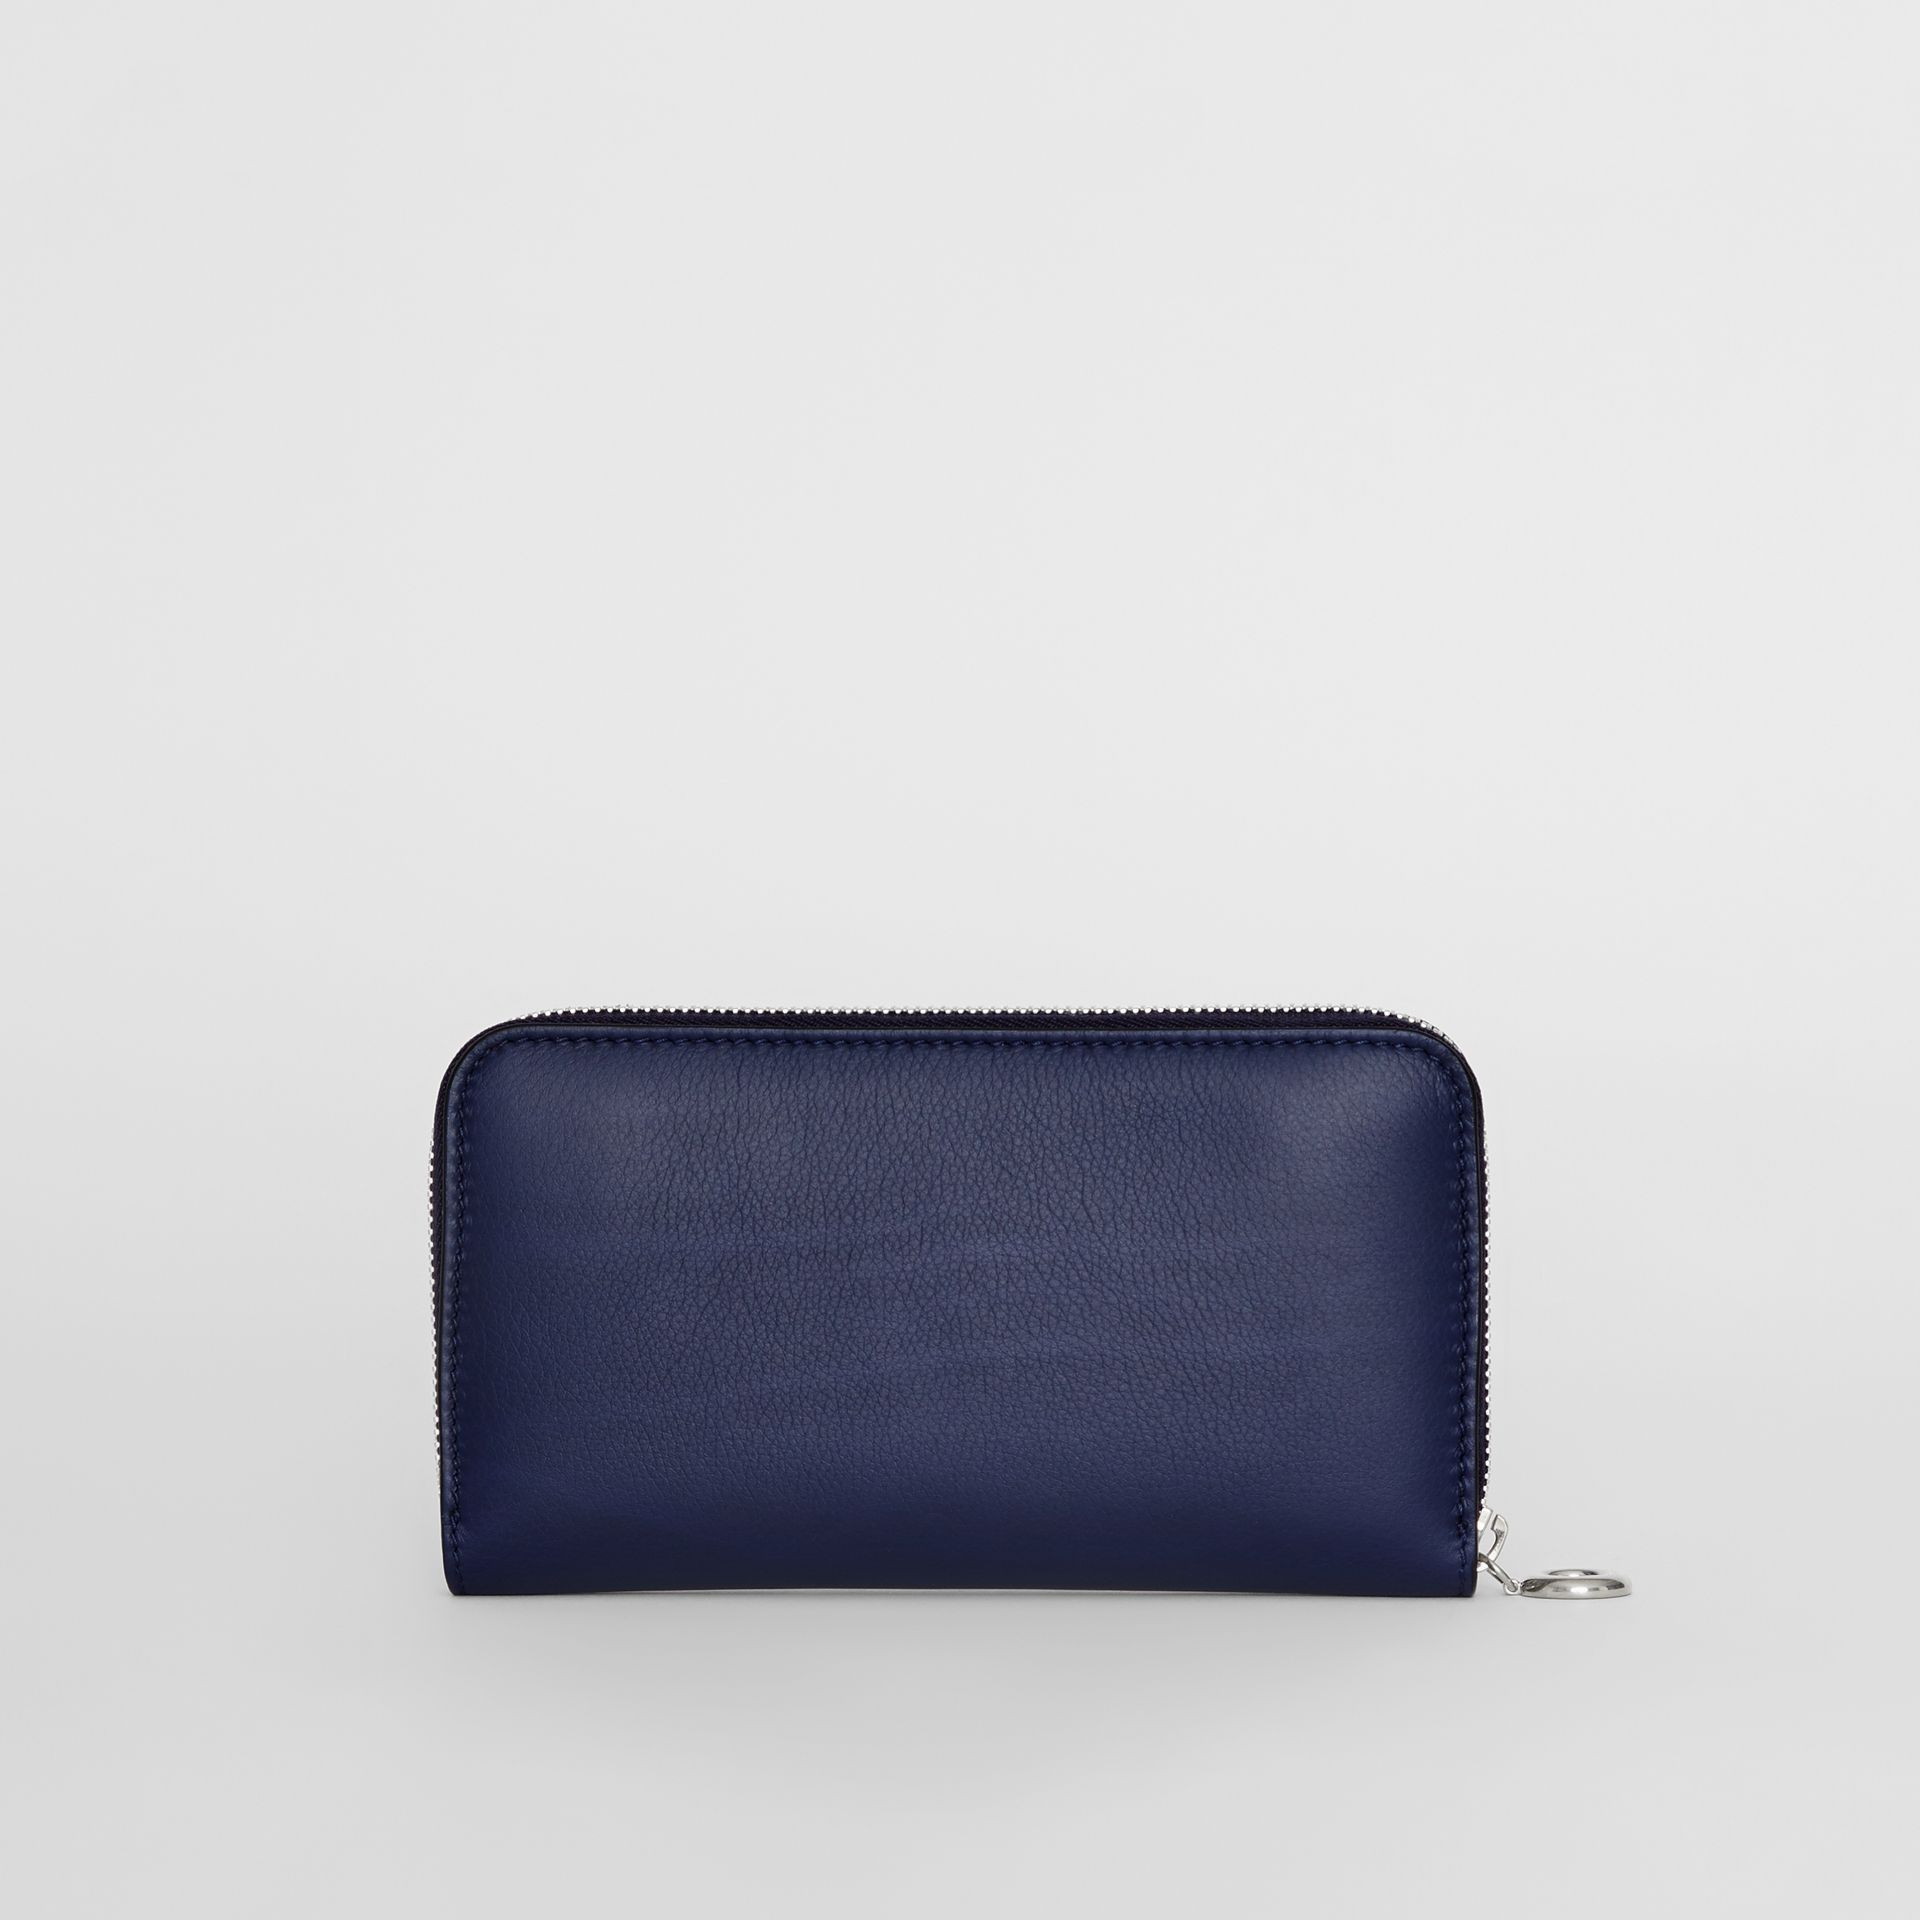 Embossed Crest Two-tone Leather Ziparound Wallet in Regency Blue - Women | Burberry - gallery image 4